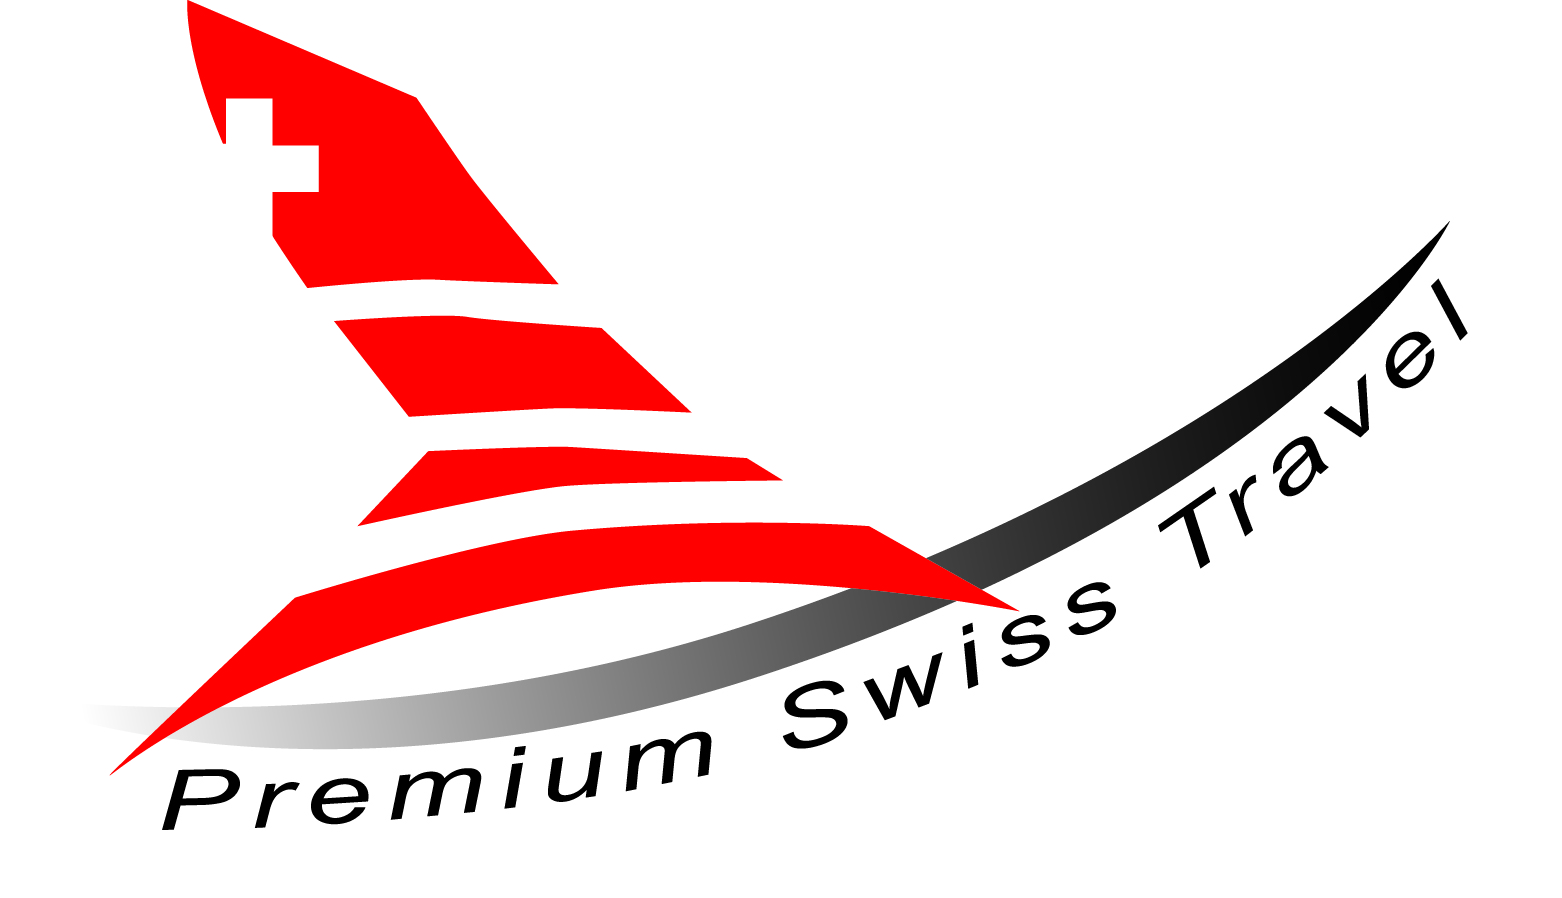 Premium Swiss Travel | Search results global - Premium Swiss Travel